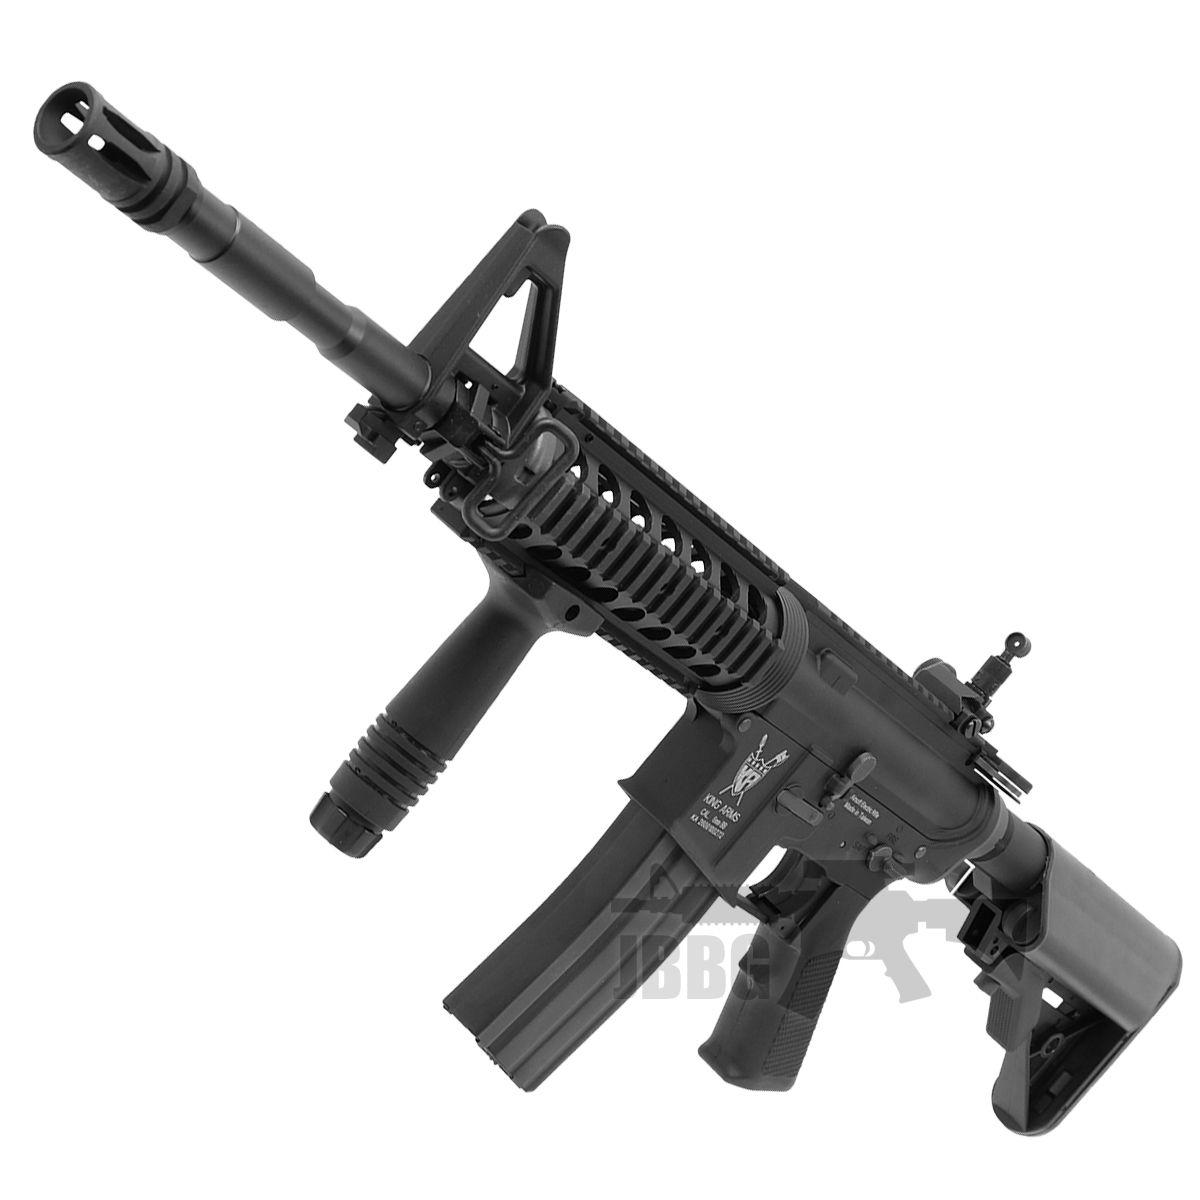 King Arms M4 RIS with Mosfet Advance Airsoft Gun 2